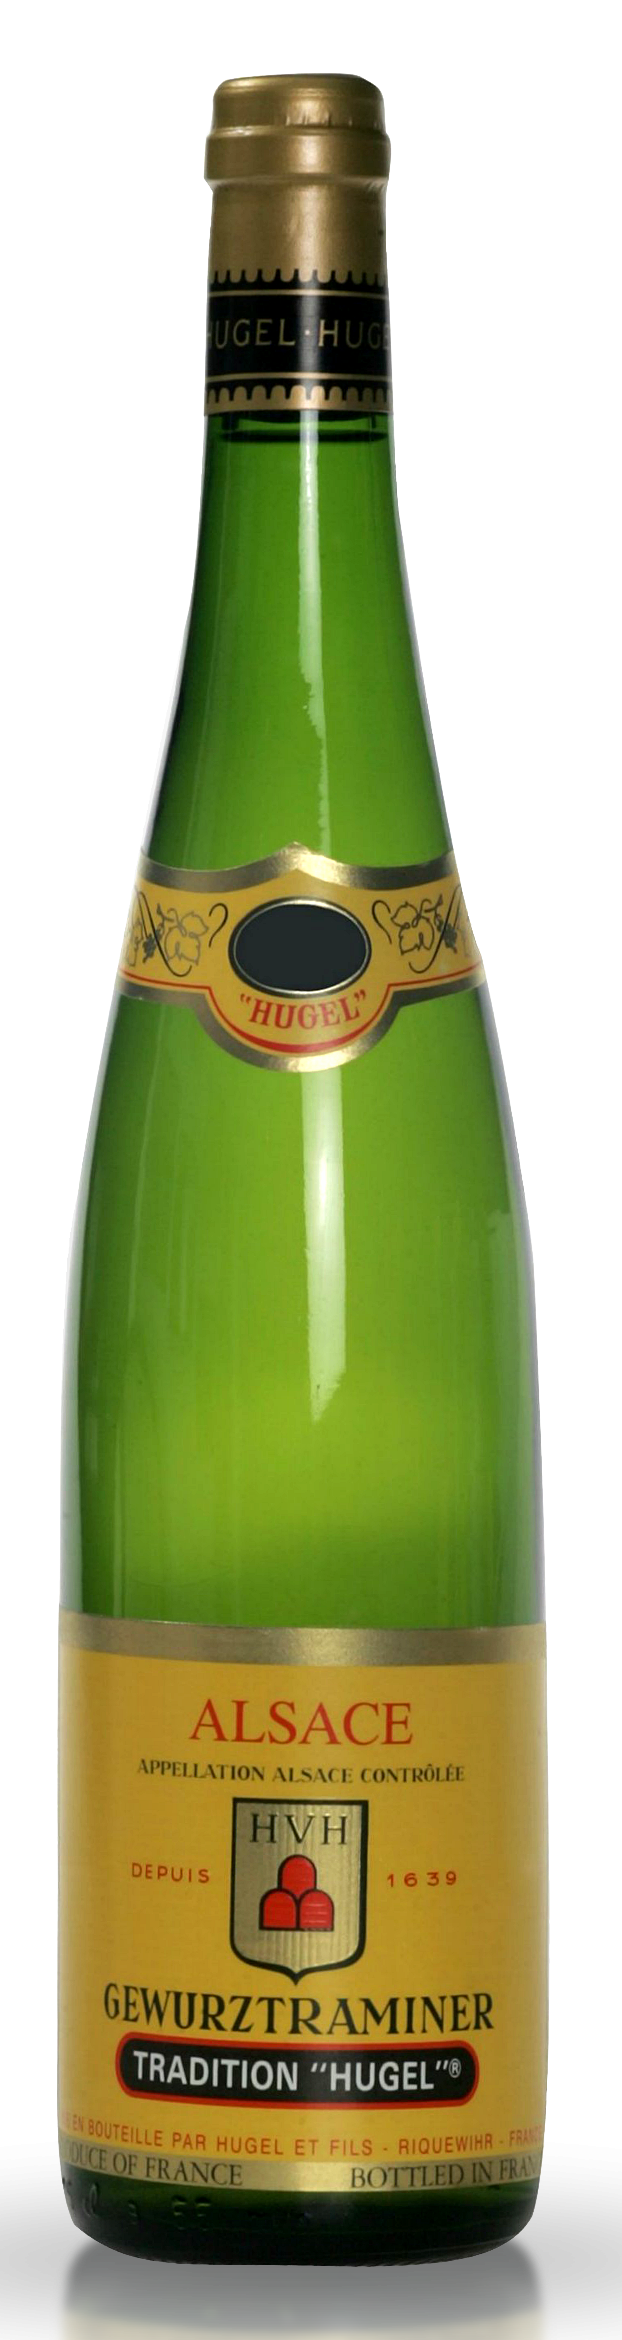 Famille Hugel Gewurztraminer, Tradition